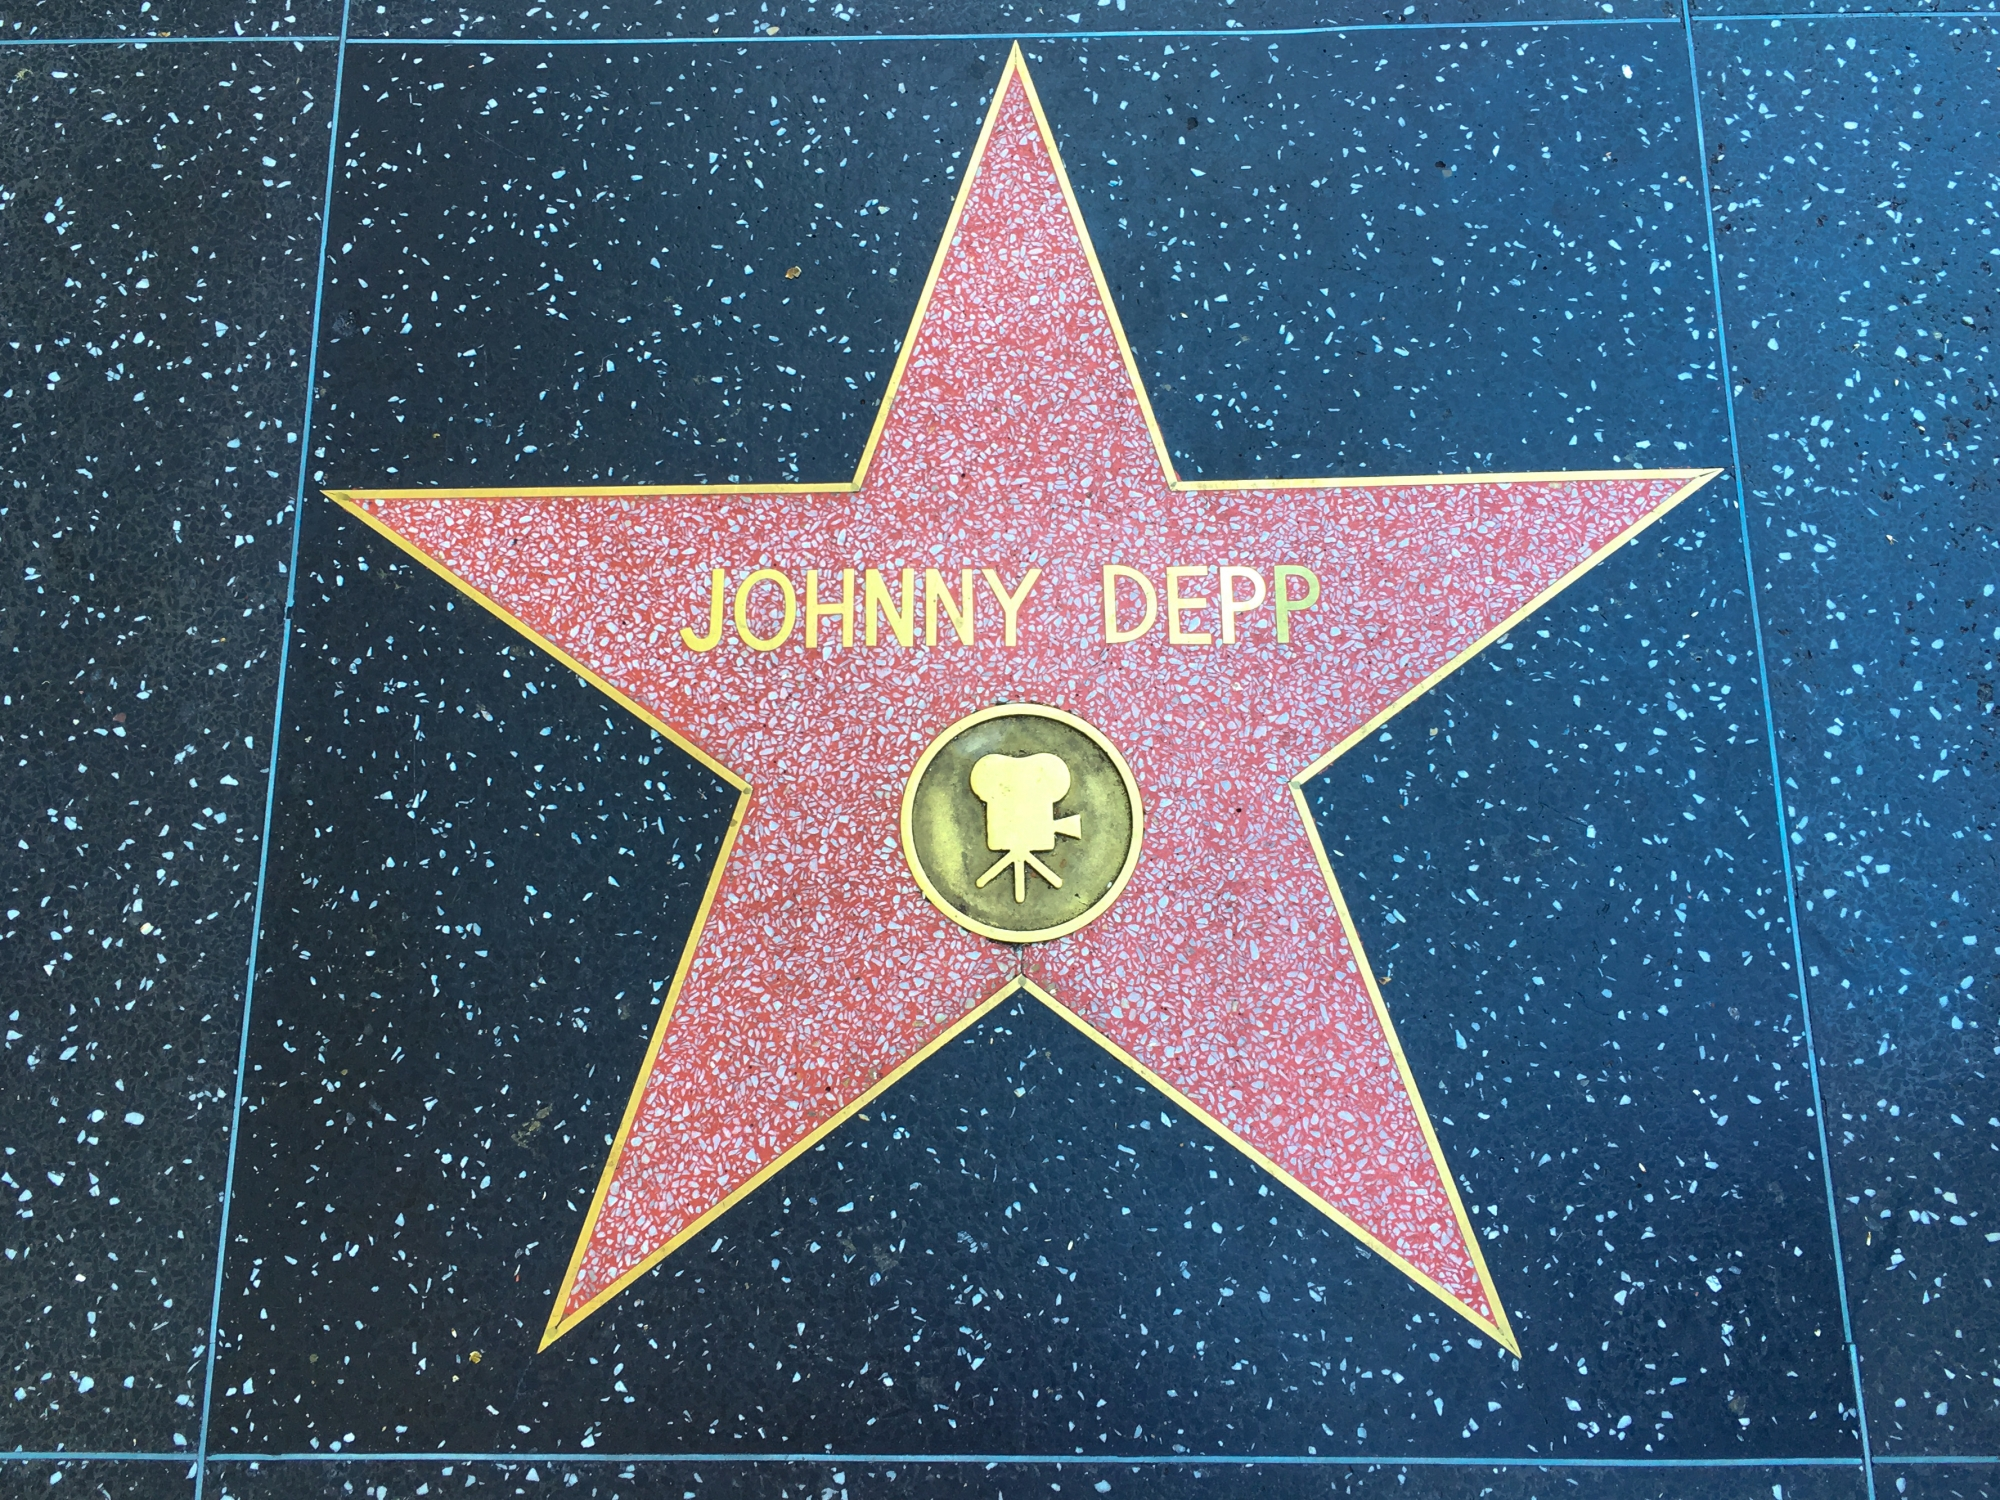 Johnny Depp star, Hollywood Walk of Fame